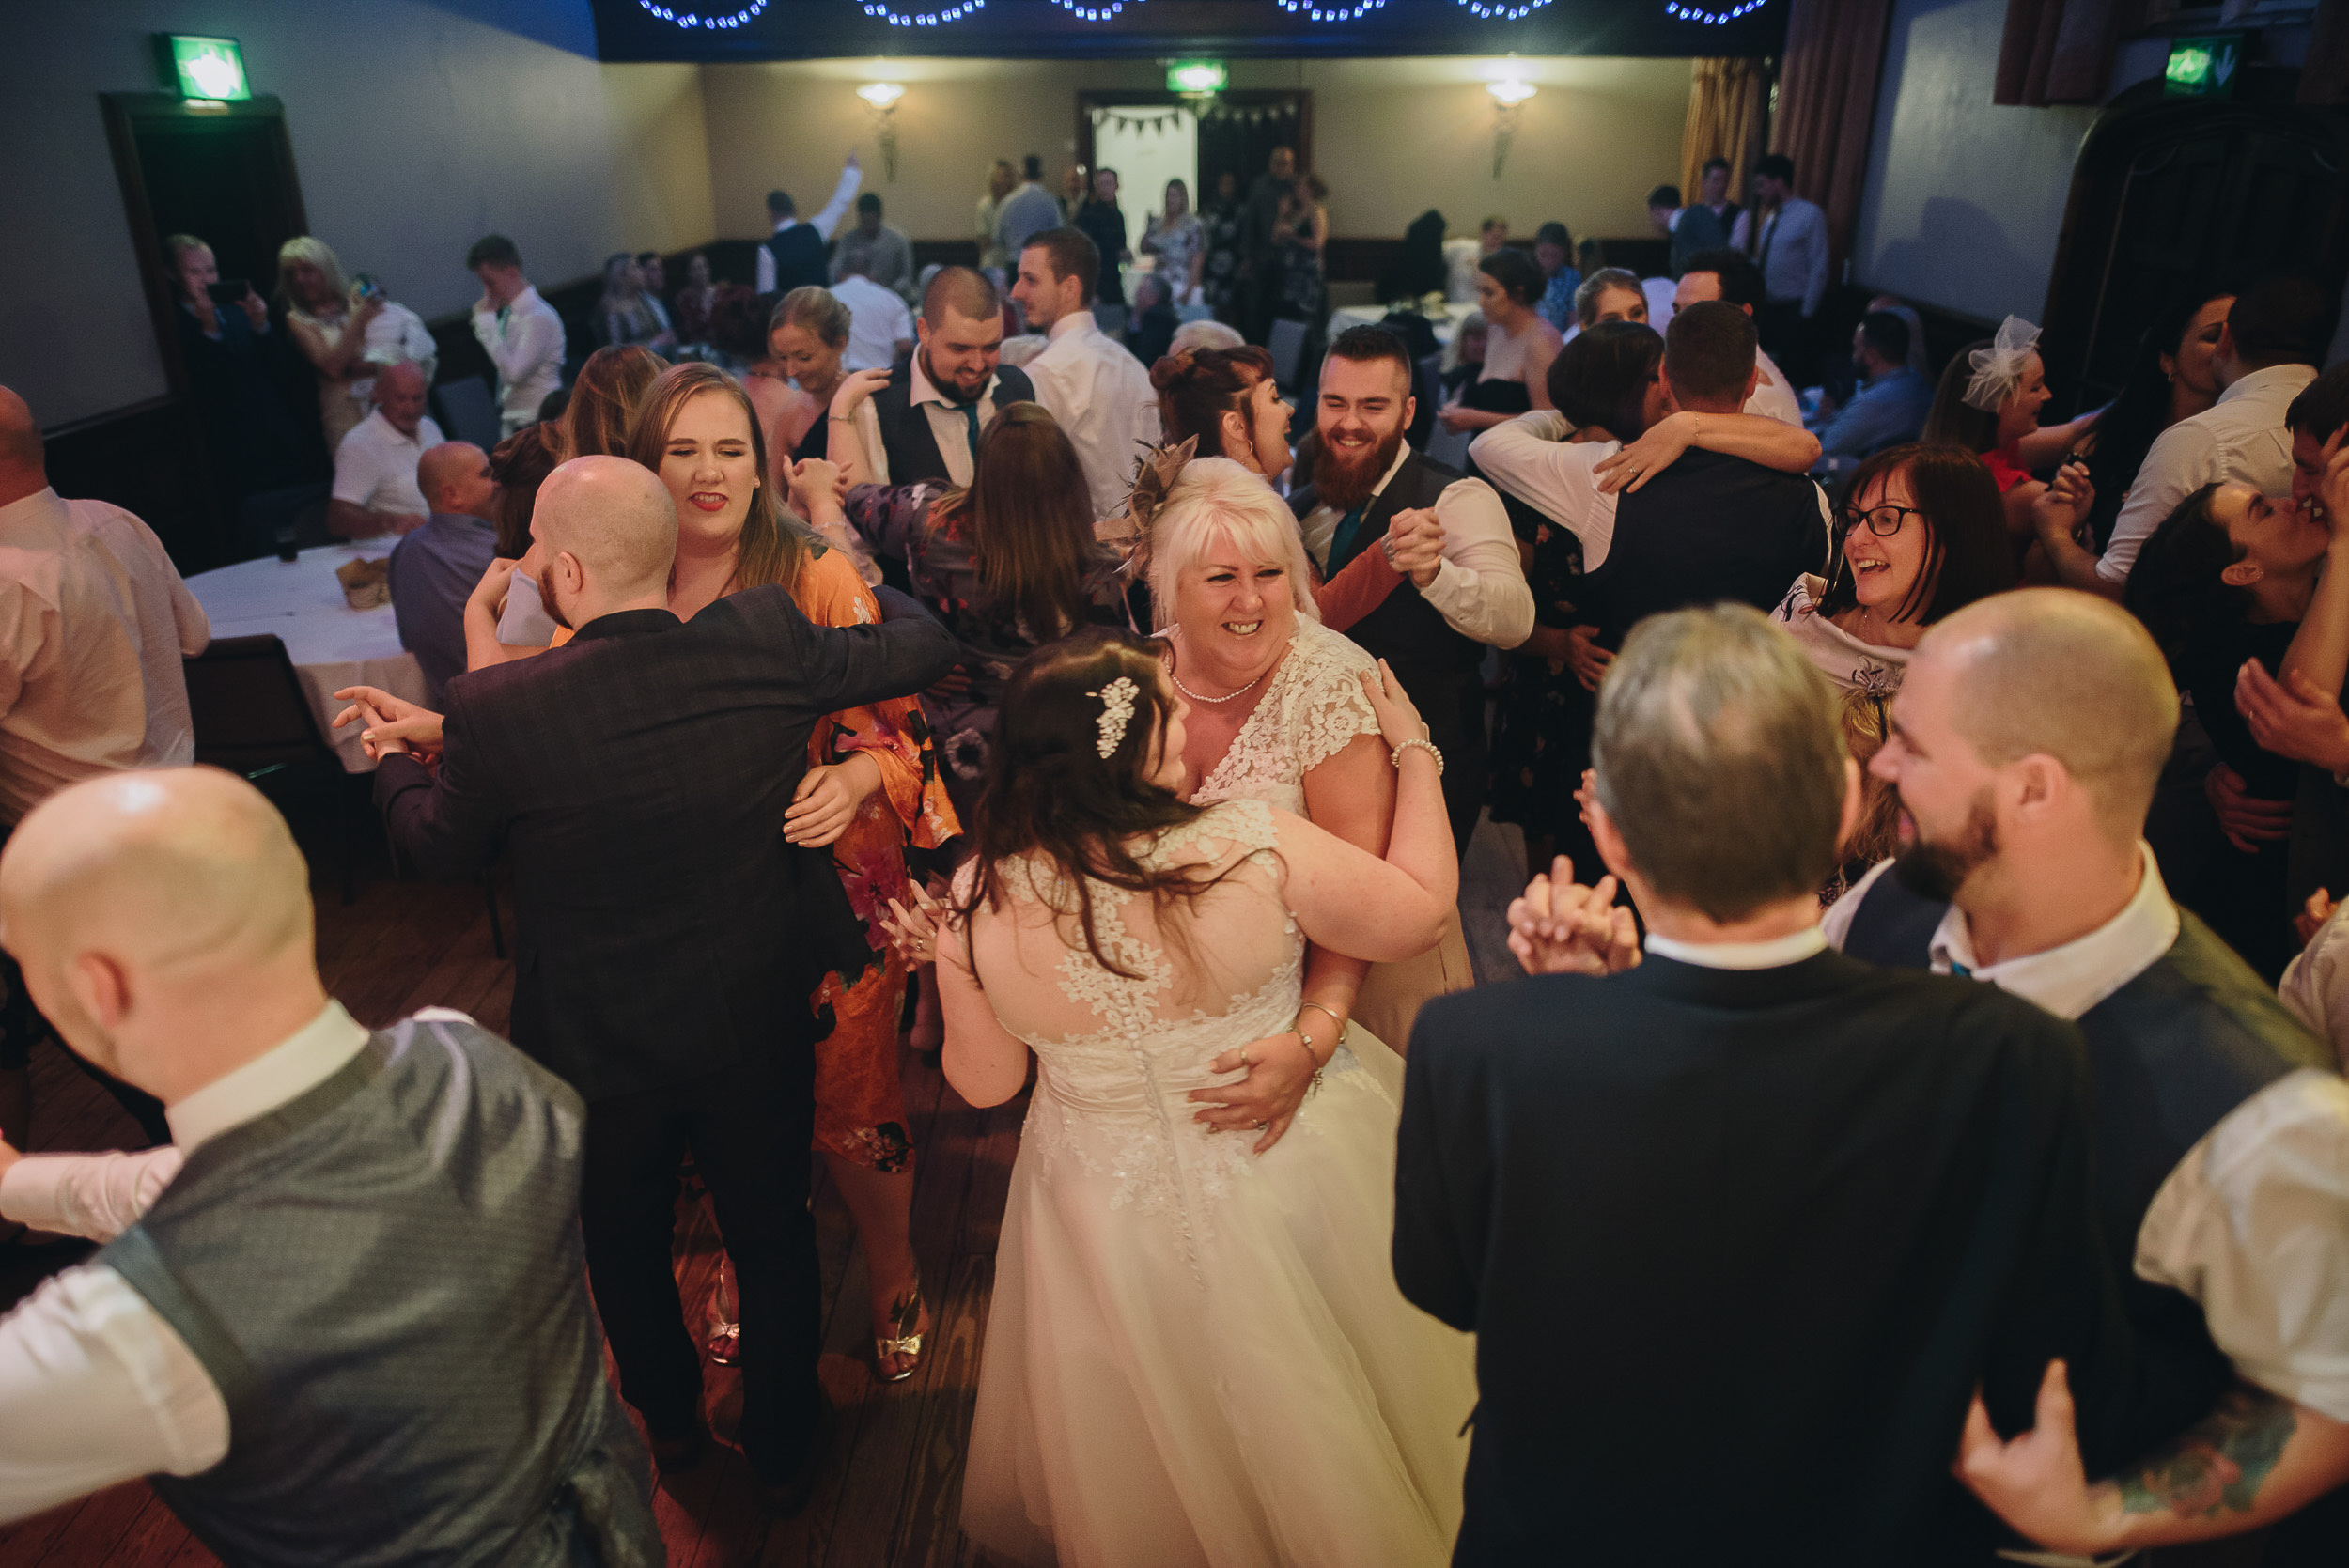 Smithills-hall-wedding-manchester-the-barlow-edgworth-hadfield-123.jpg